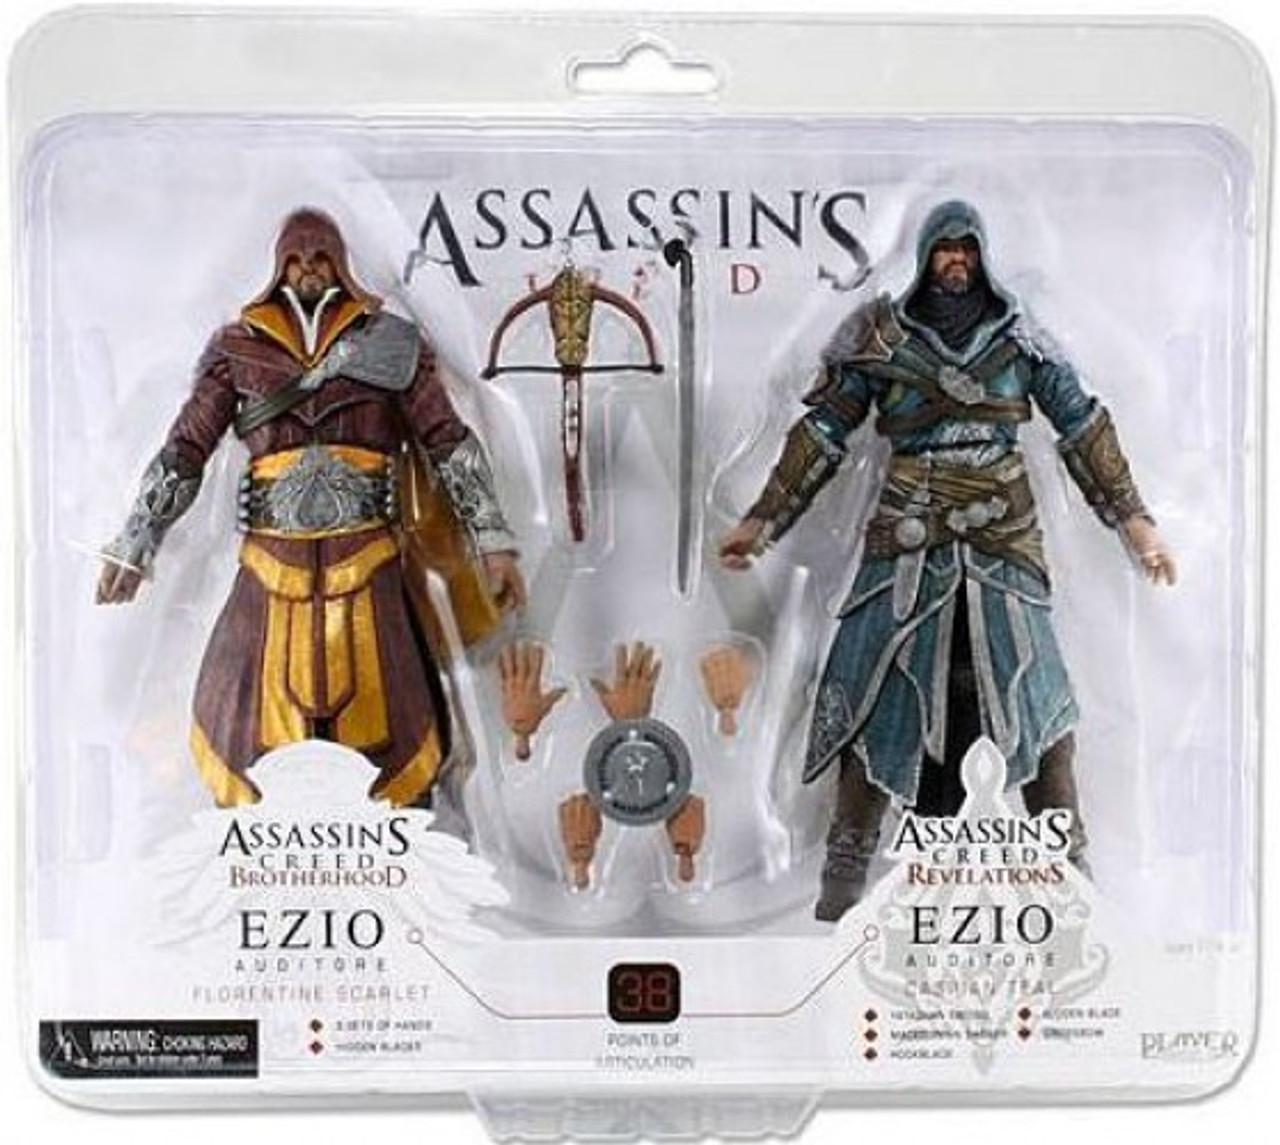 Neca Assassins Creed Brotherhood Ezio Exclusive Action Figure 2